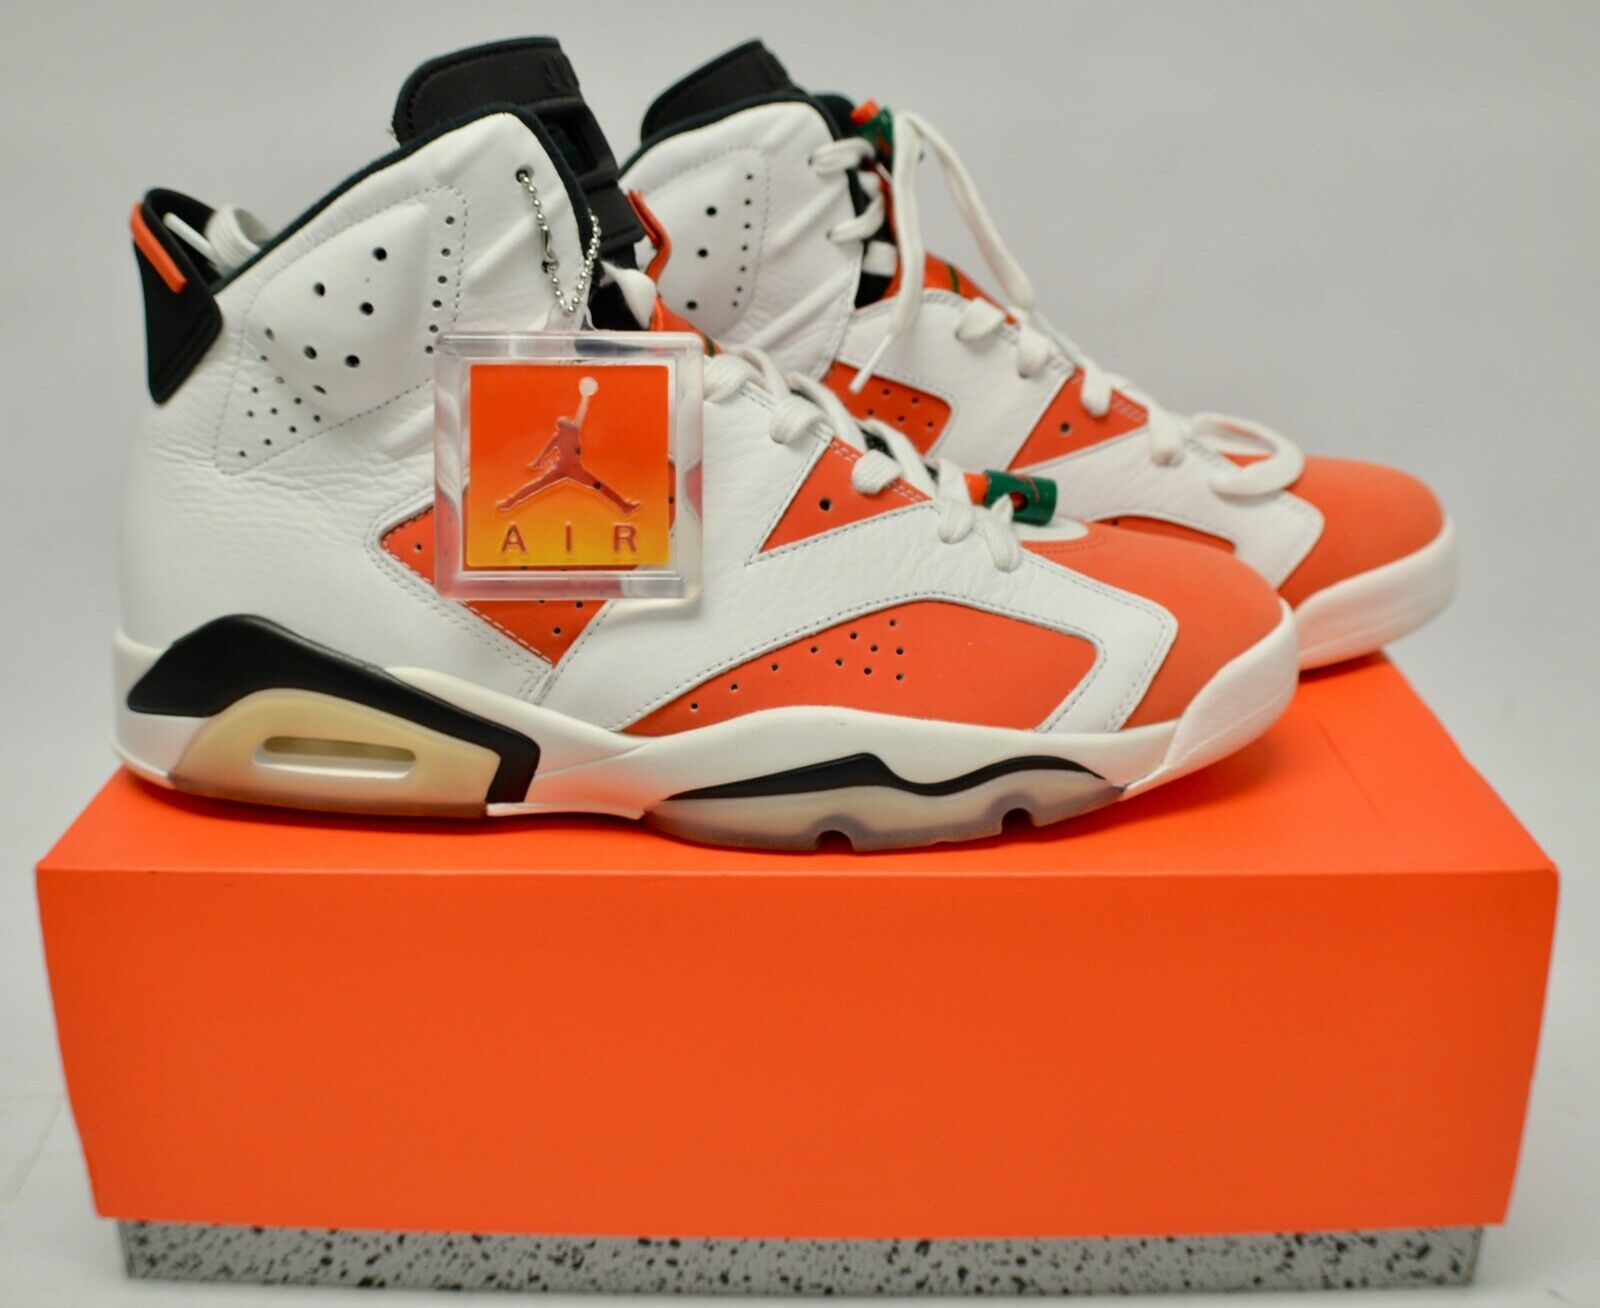 separation shoes d4e98 98d8b Nike Air Jordan Jordan Jordan 6 Retro VI BE LIKE MIKE 384664-145 Gatorade  Size